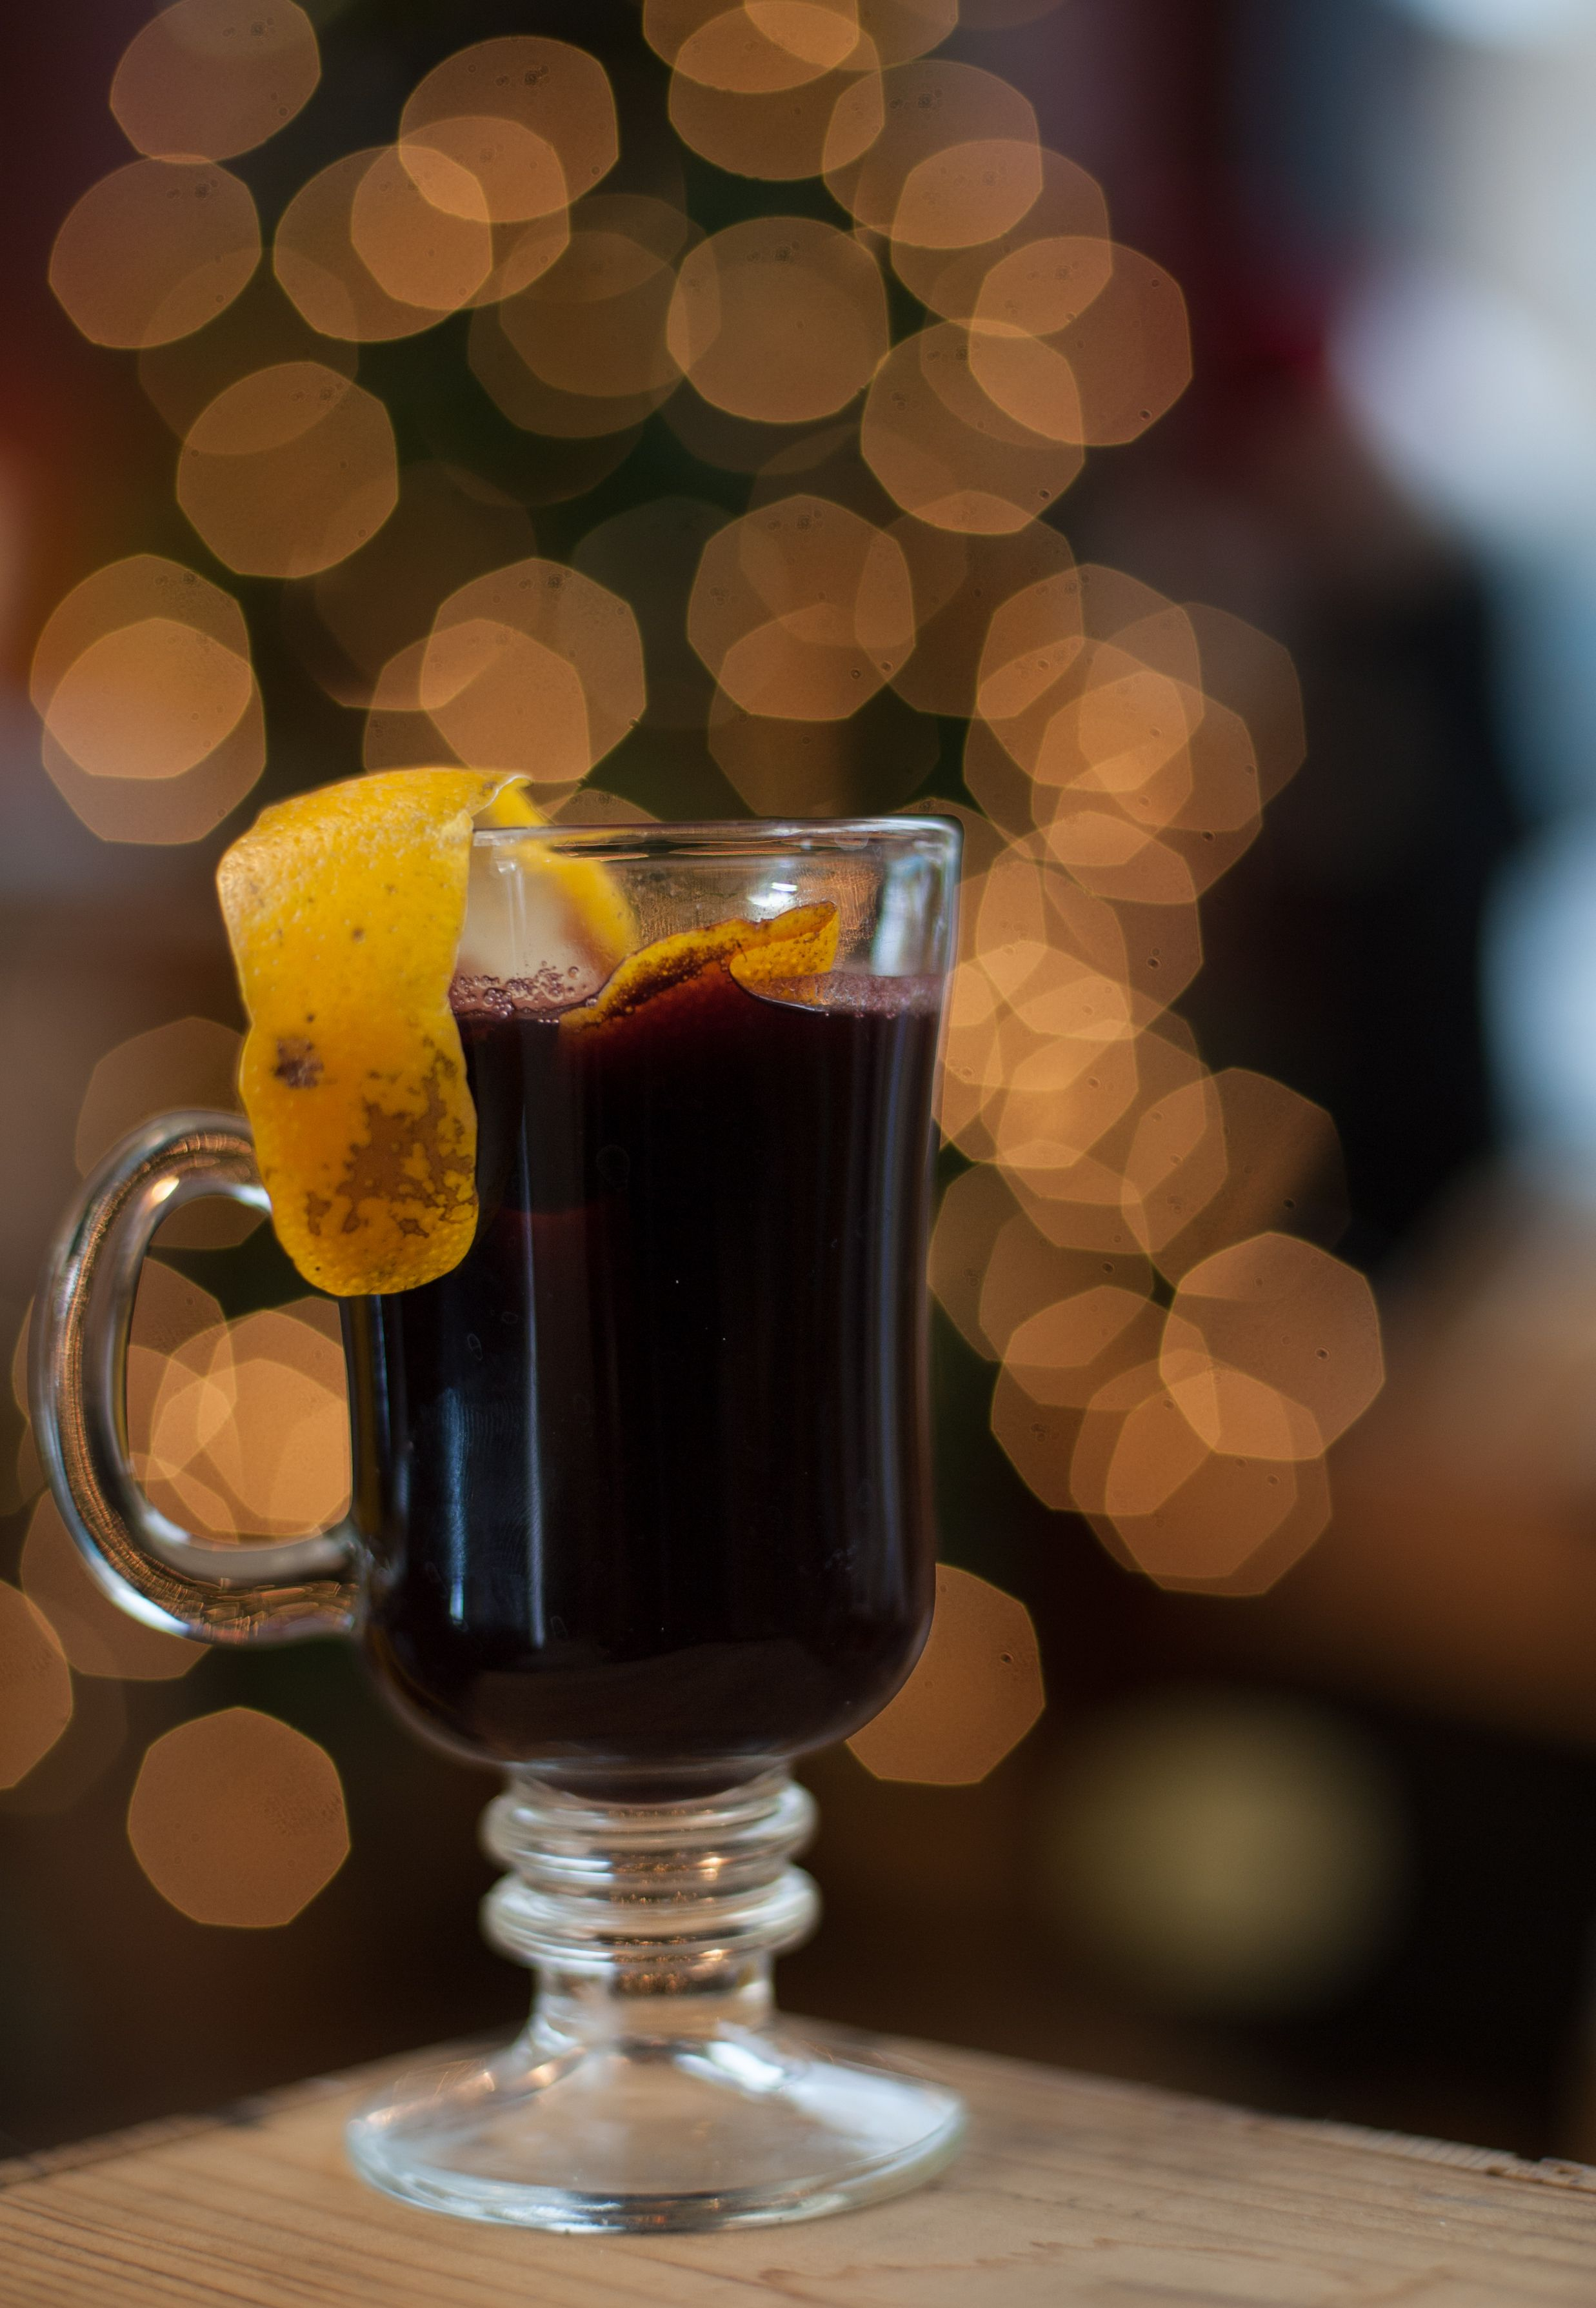 Mulled wine recipe by chef emma currie of the brass